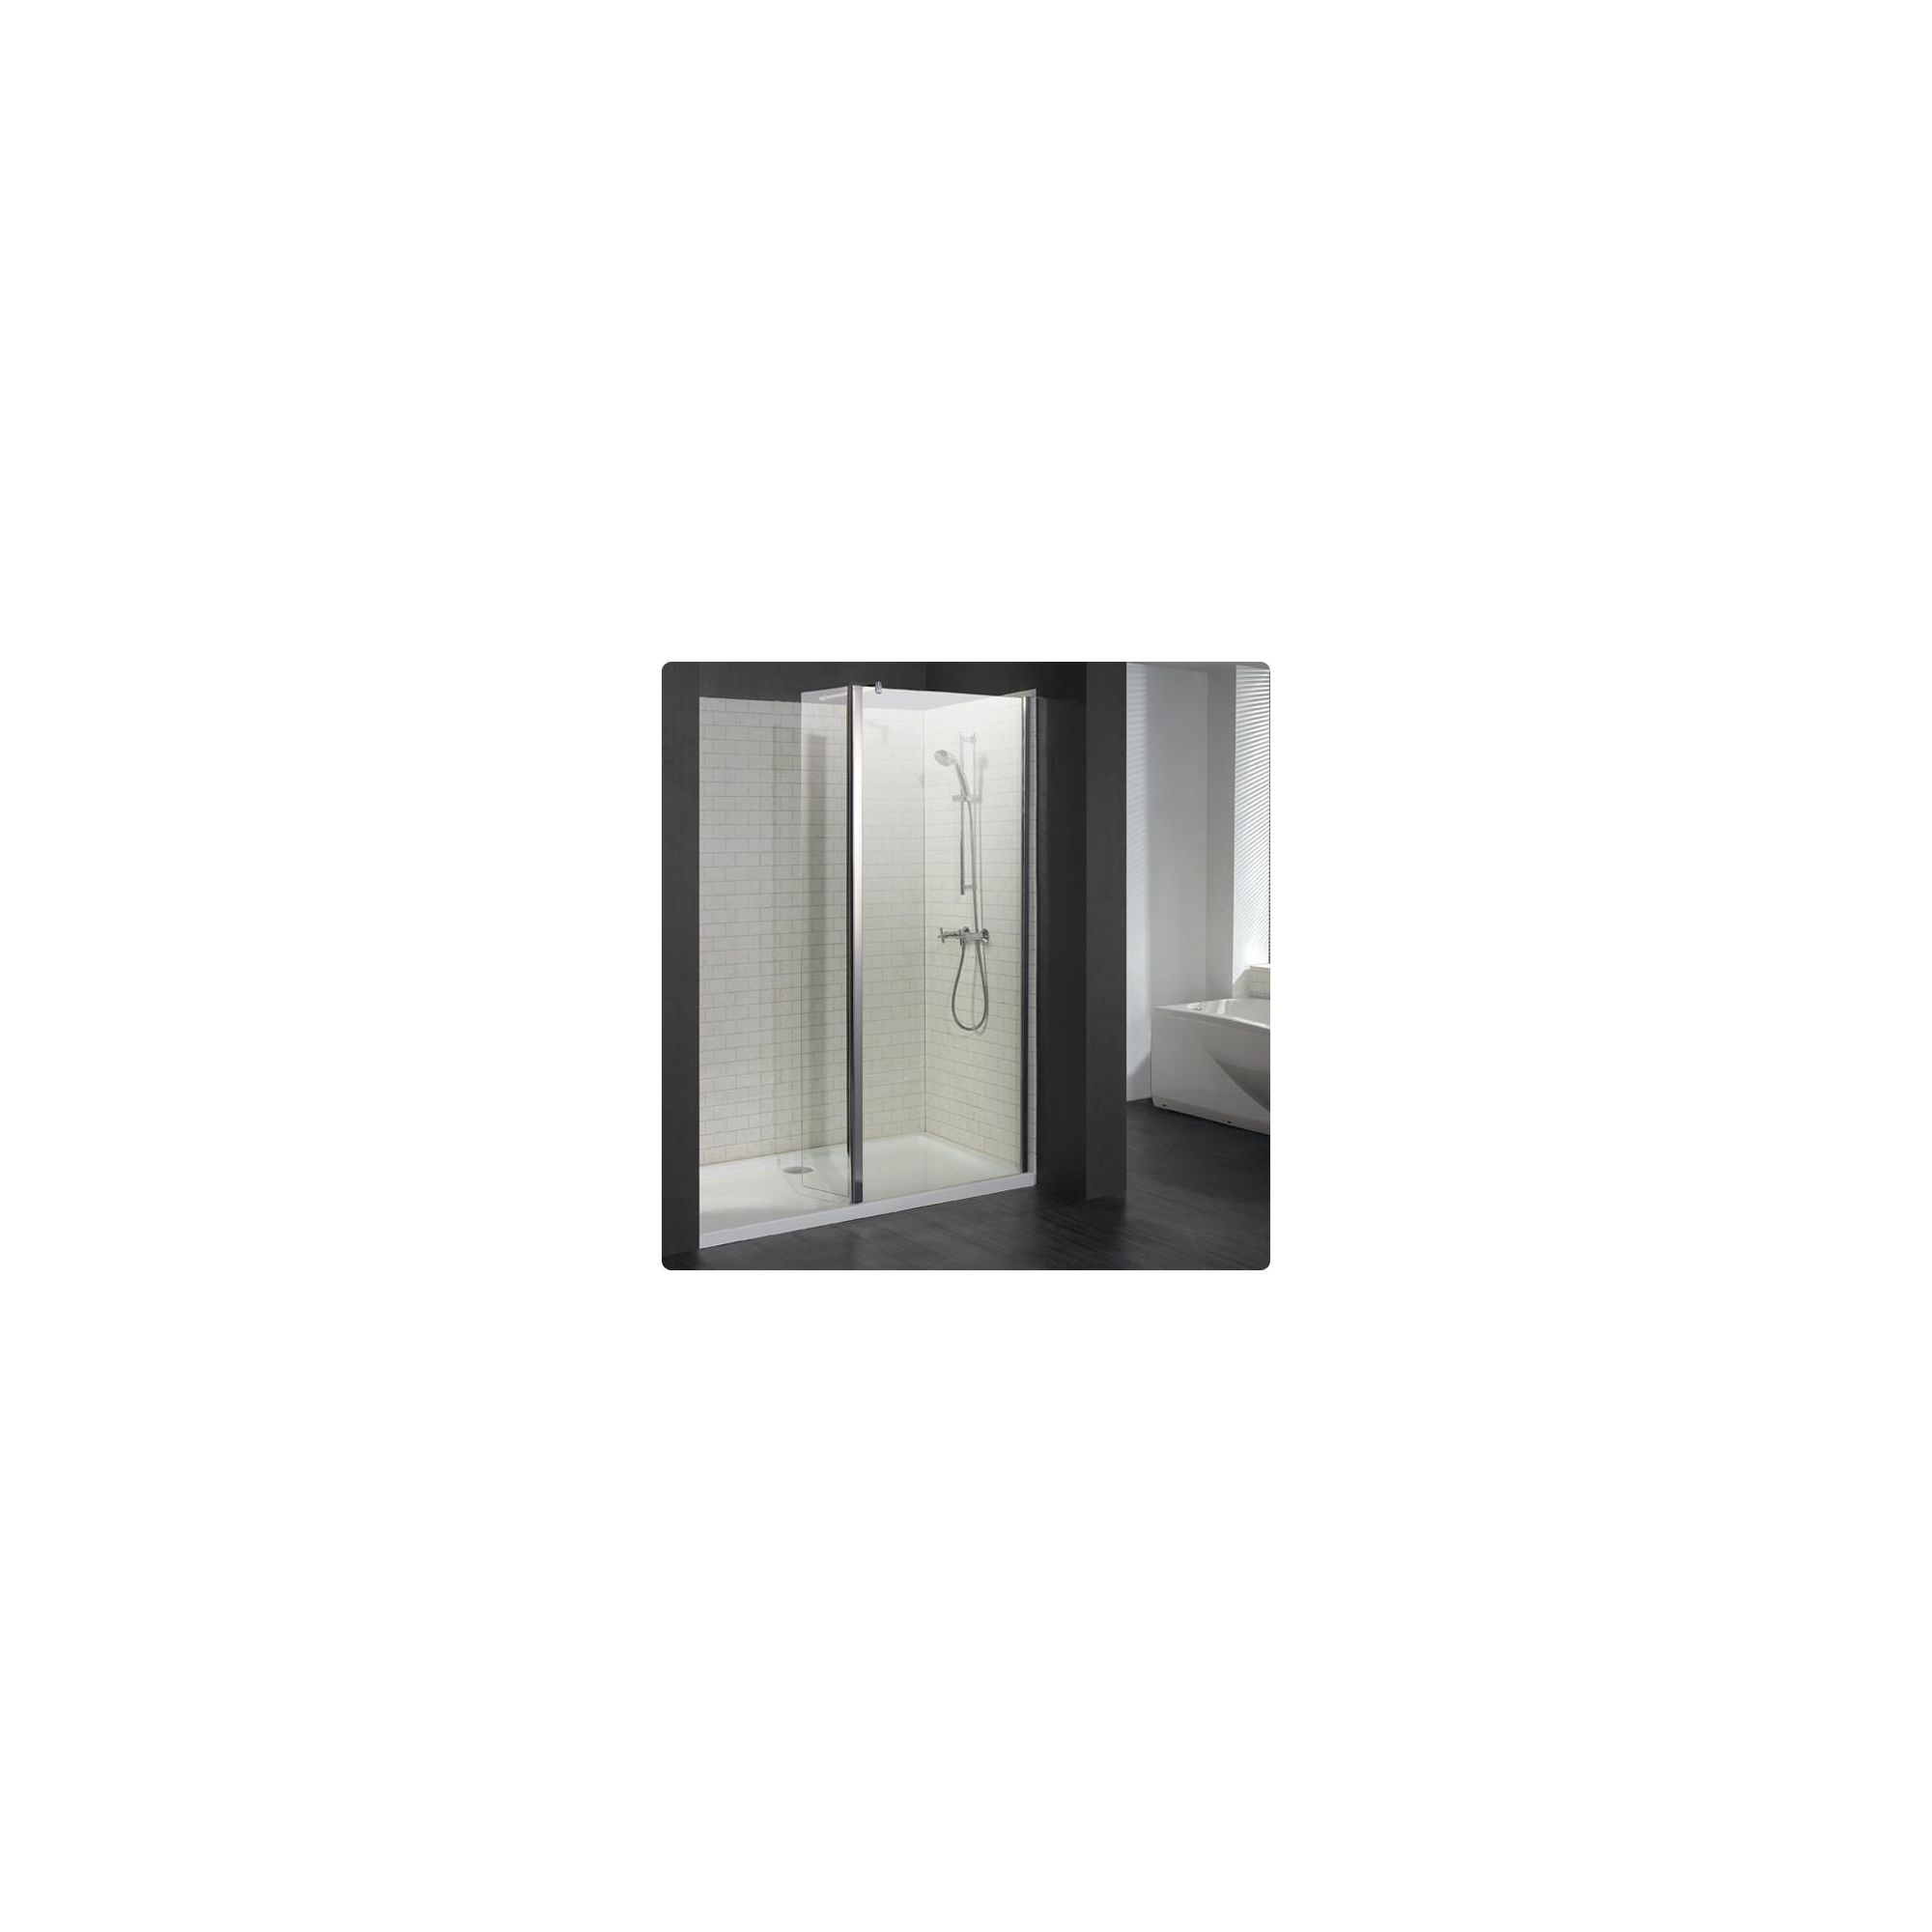 Duchy Choice Silver Walk-In Shower Enclosure 1500mm x 800mm (Complete with Tray), 6mm Glass at Tesco Direct